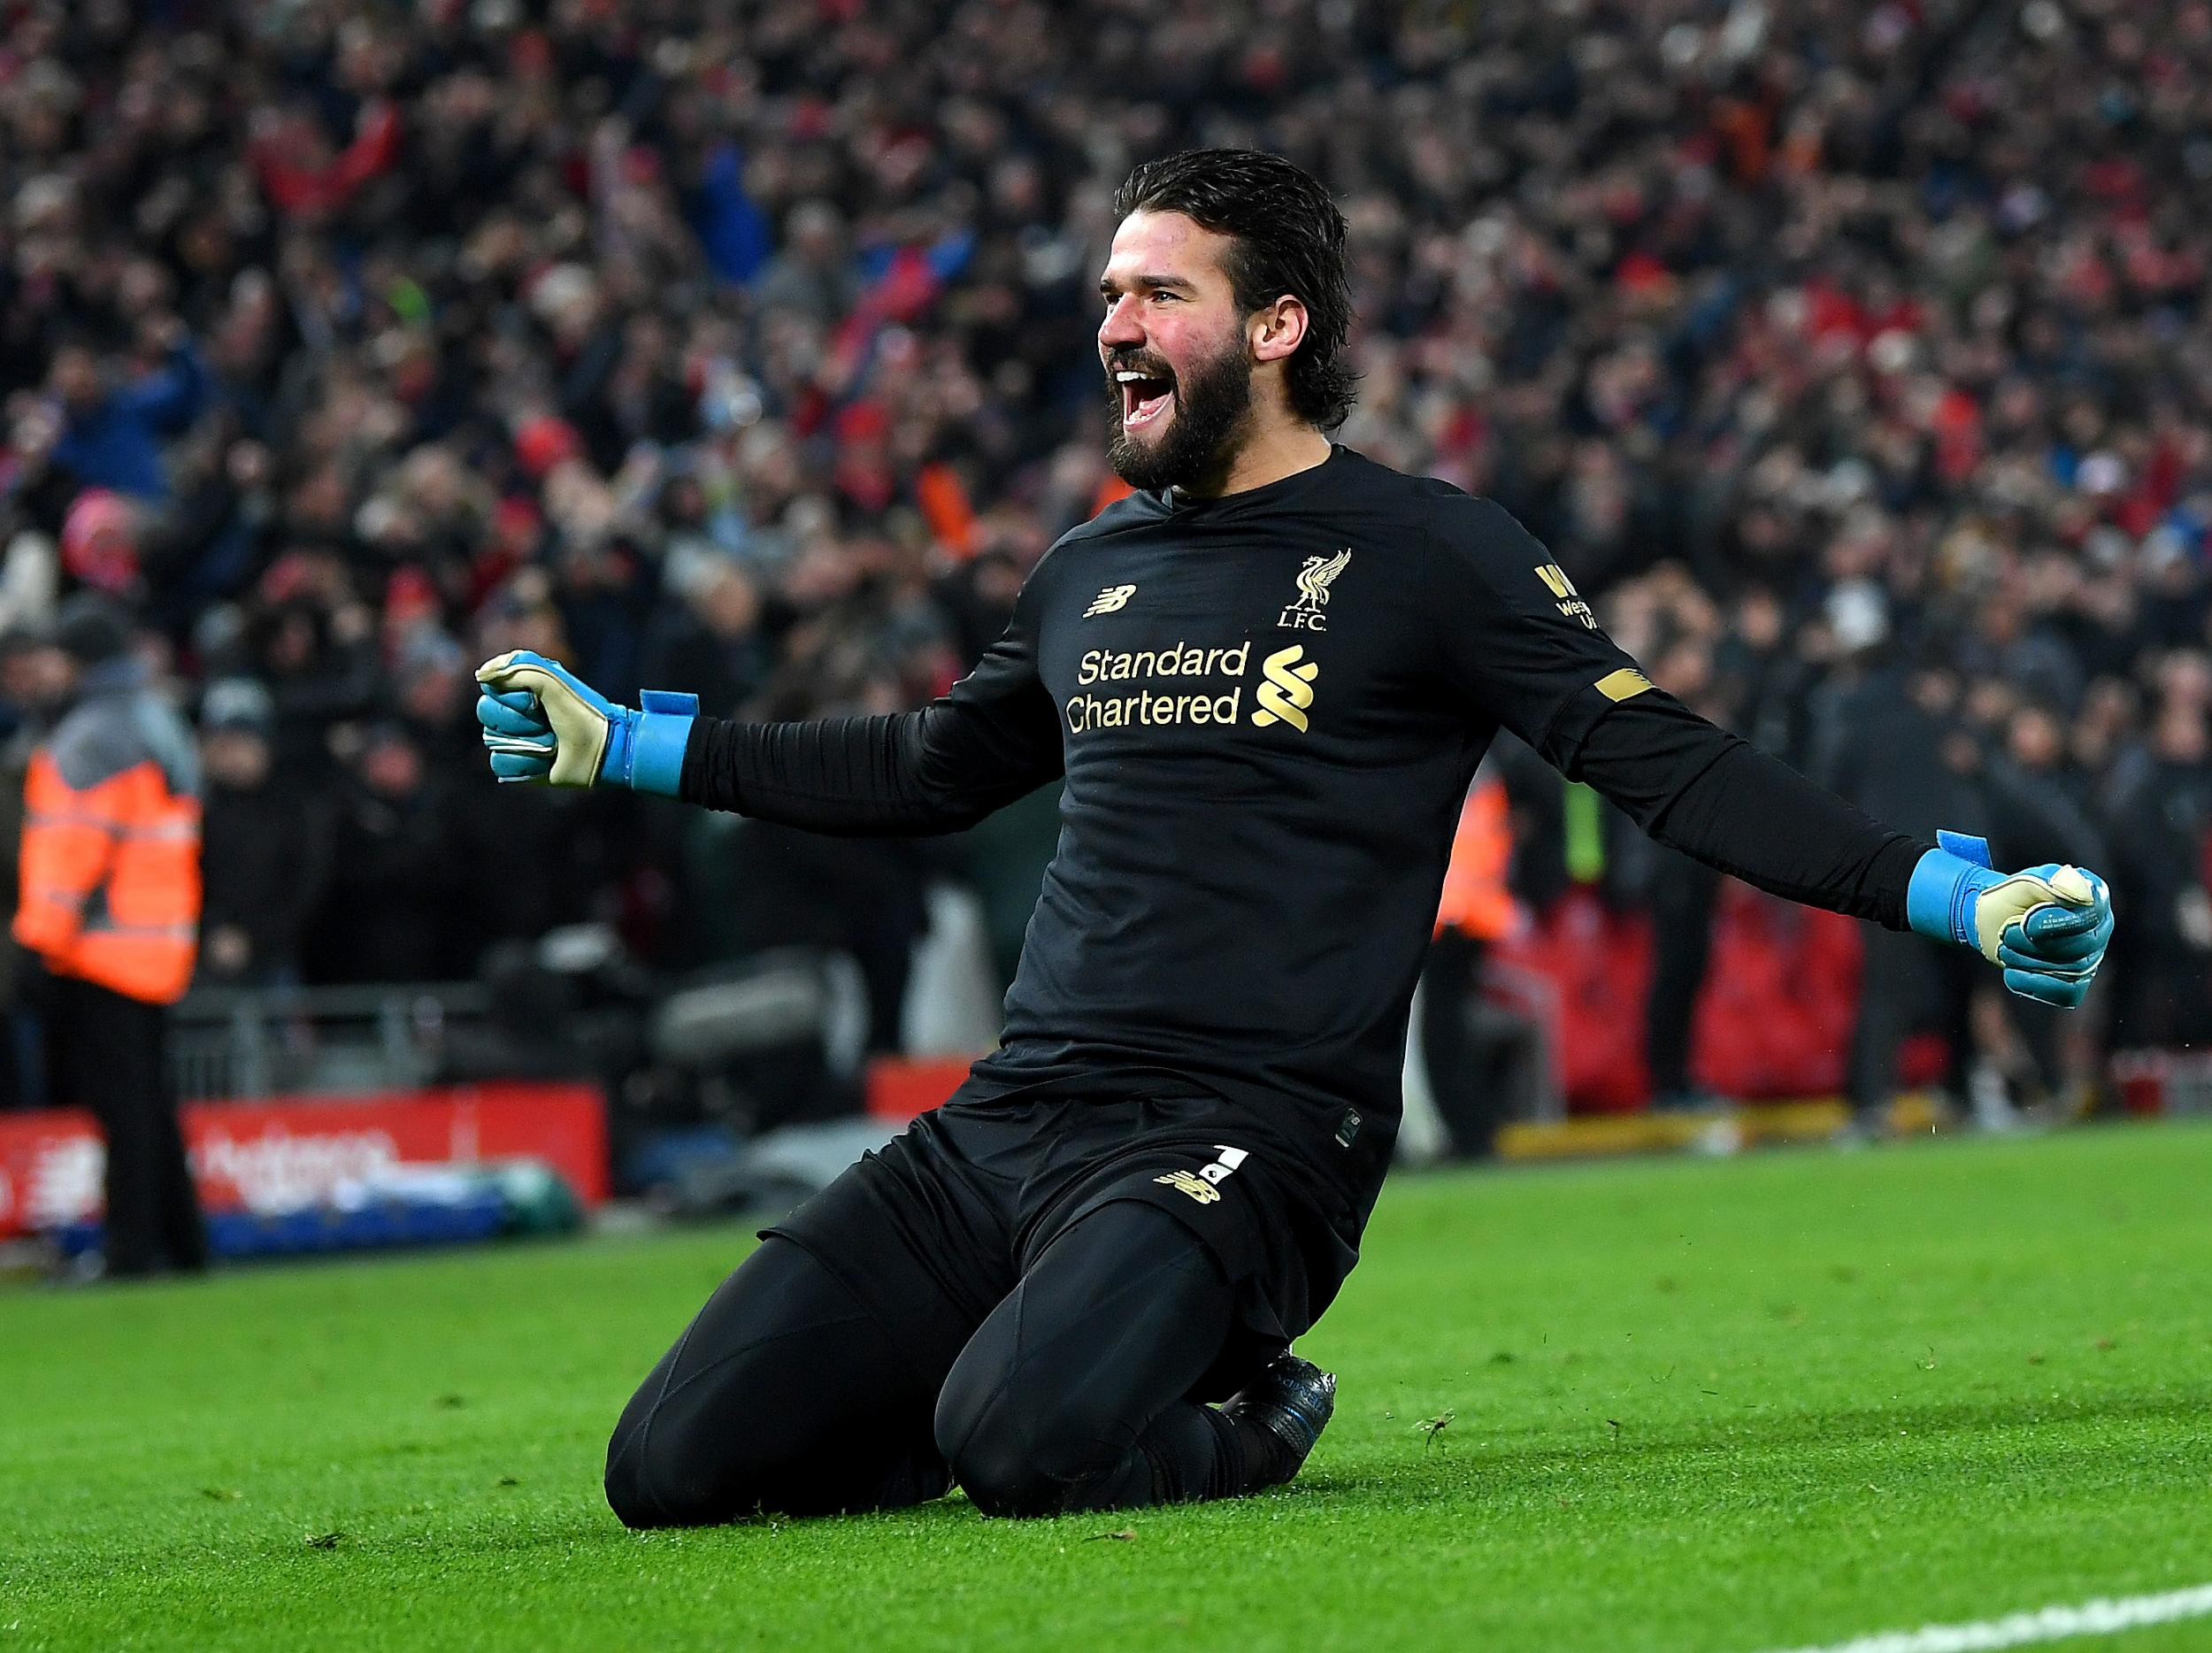 How Liverpool's Alisson replaced Manchester United rival David de Gea as the gold standard of goalkeeping